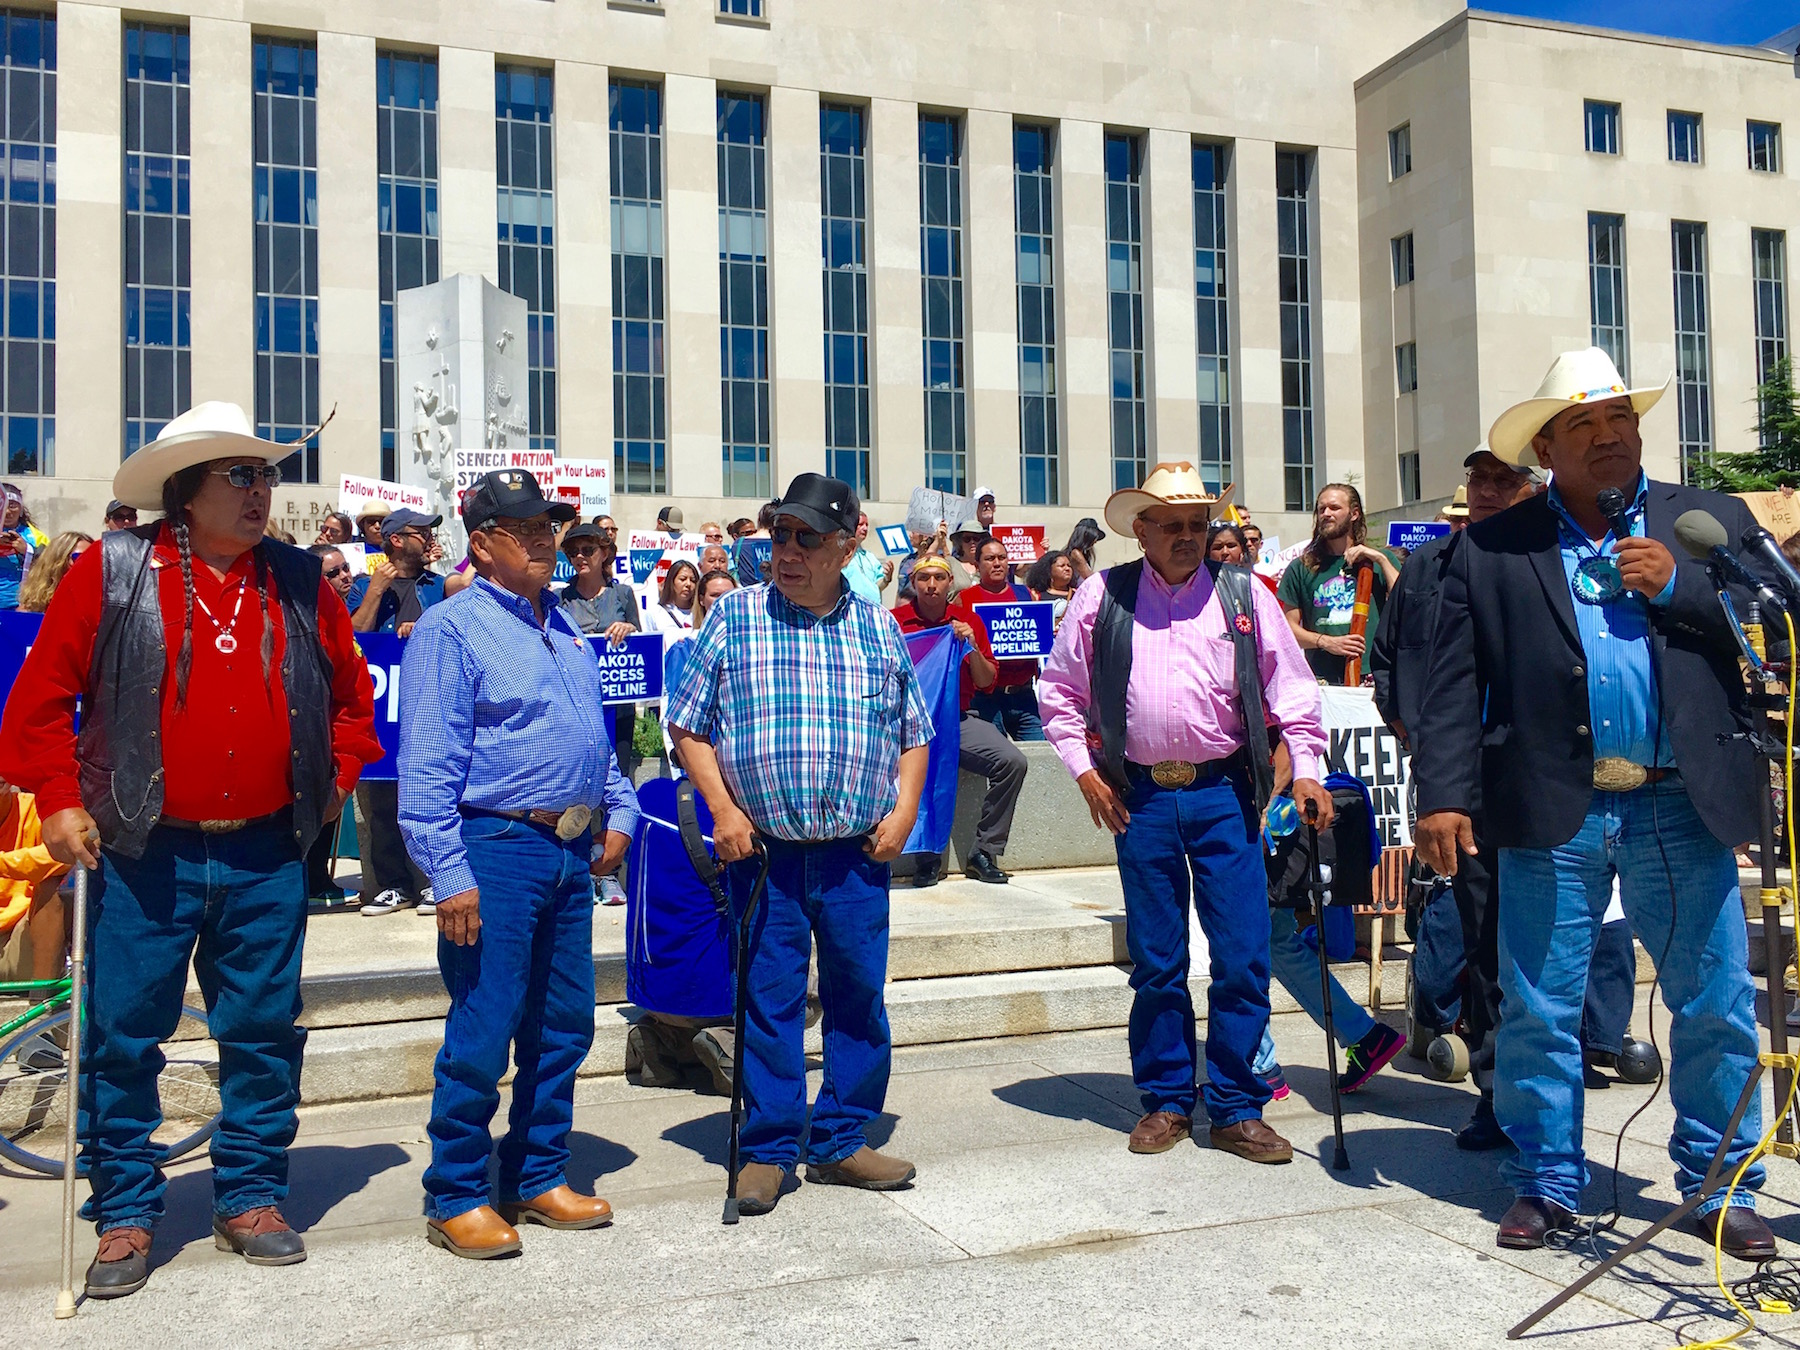 Cheyenne River Sioux Tribe: President Trump can't 'steamroll' over treaties